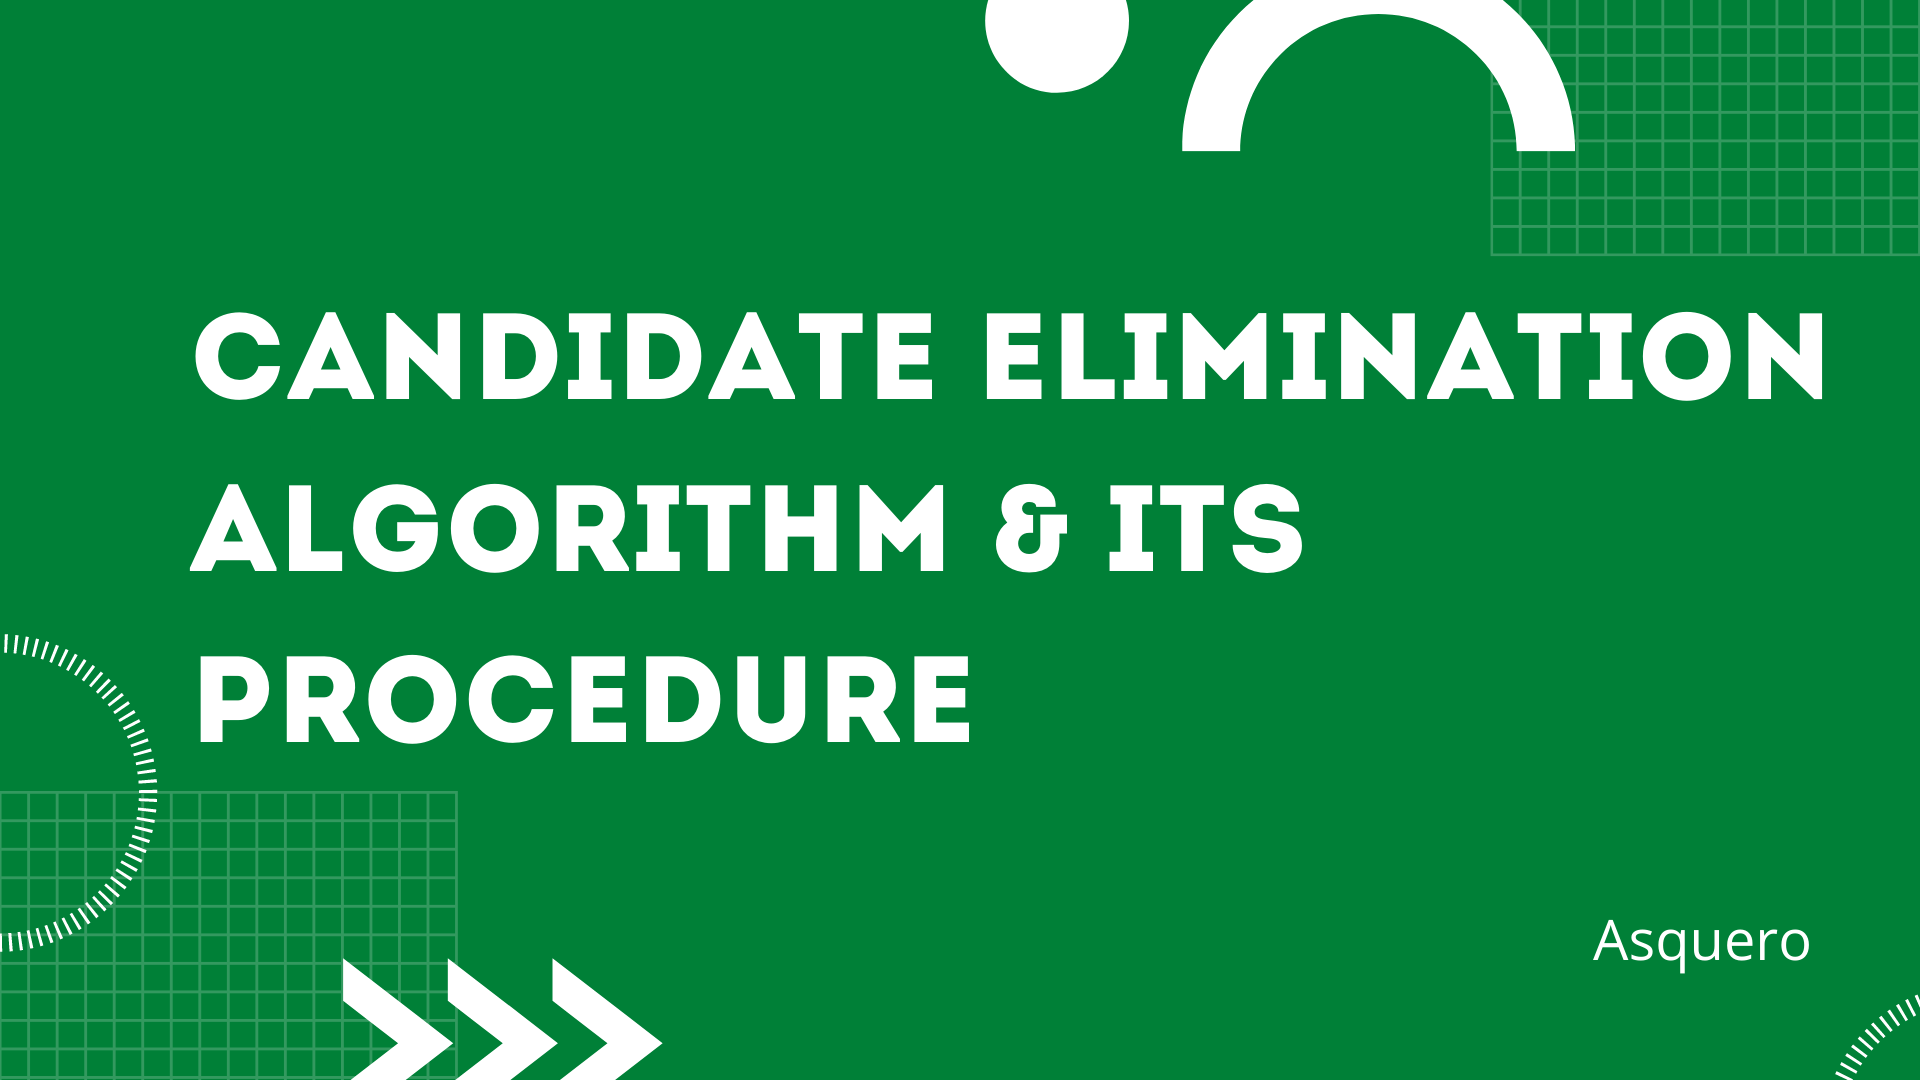 Candidate Elimination Algorithm & its Procedure